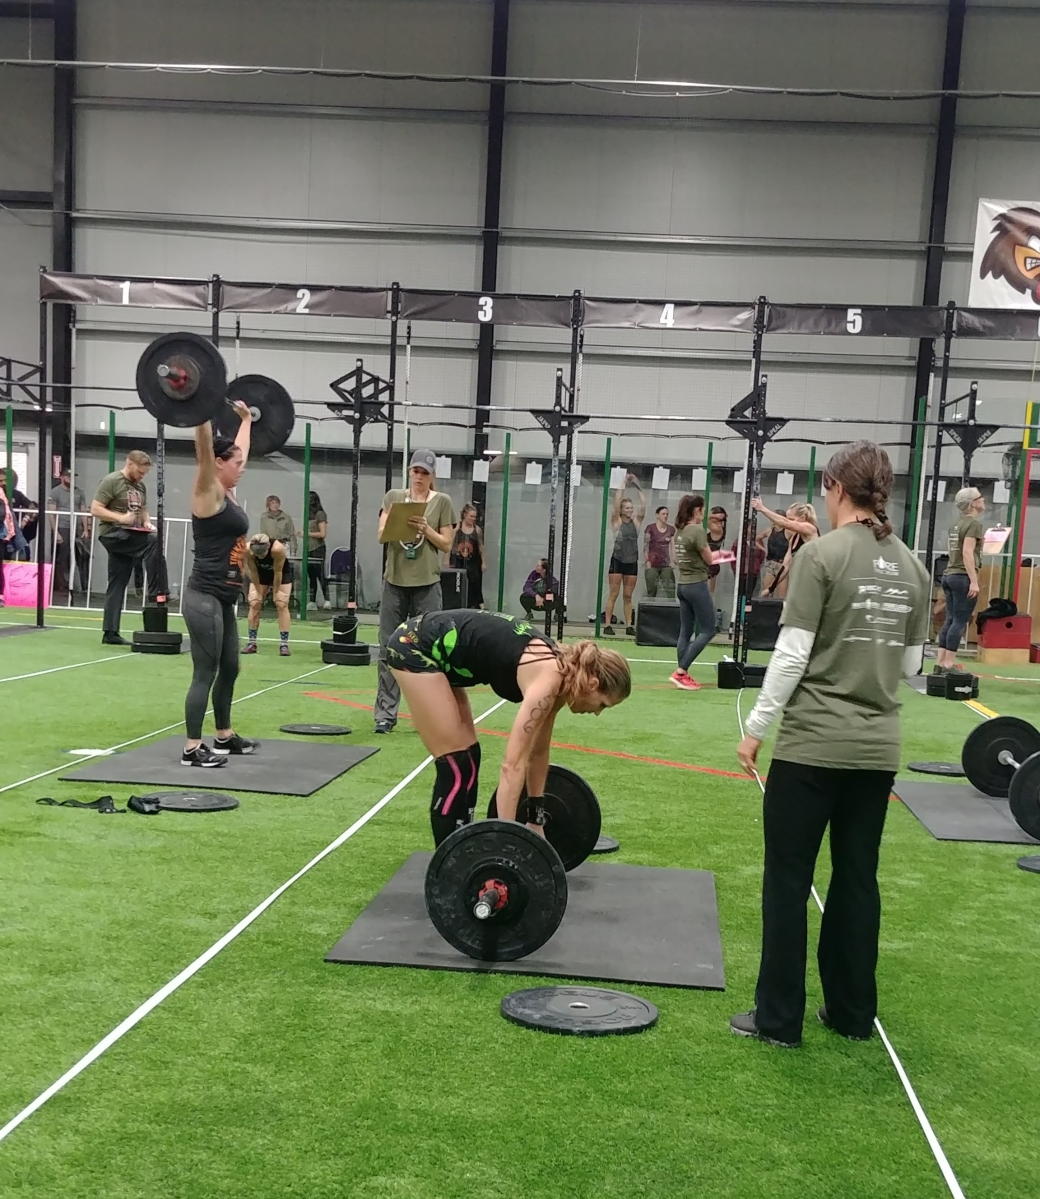 hotcrossfitchicks at local crossfit competitions in denver, co